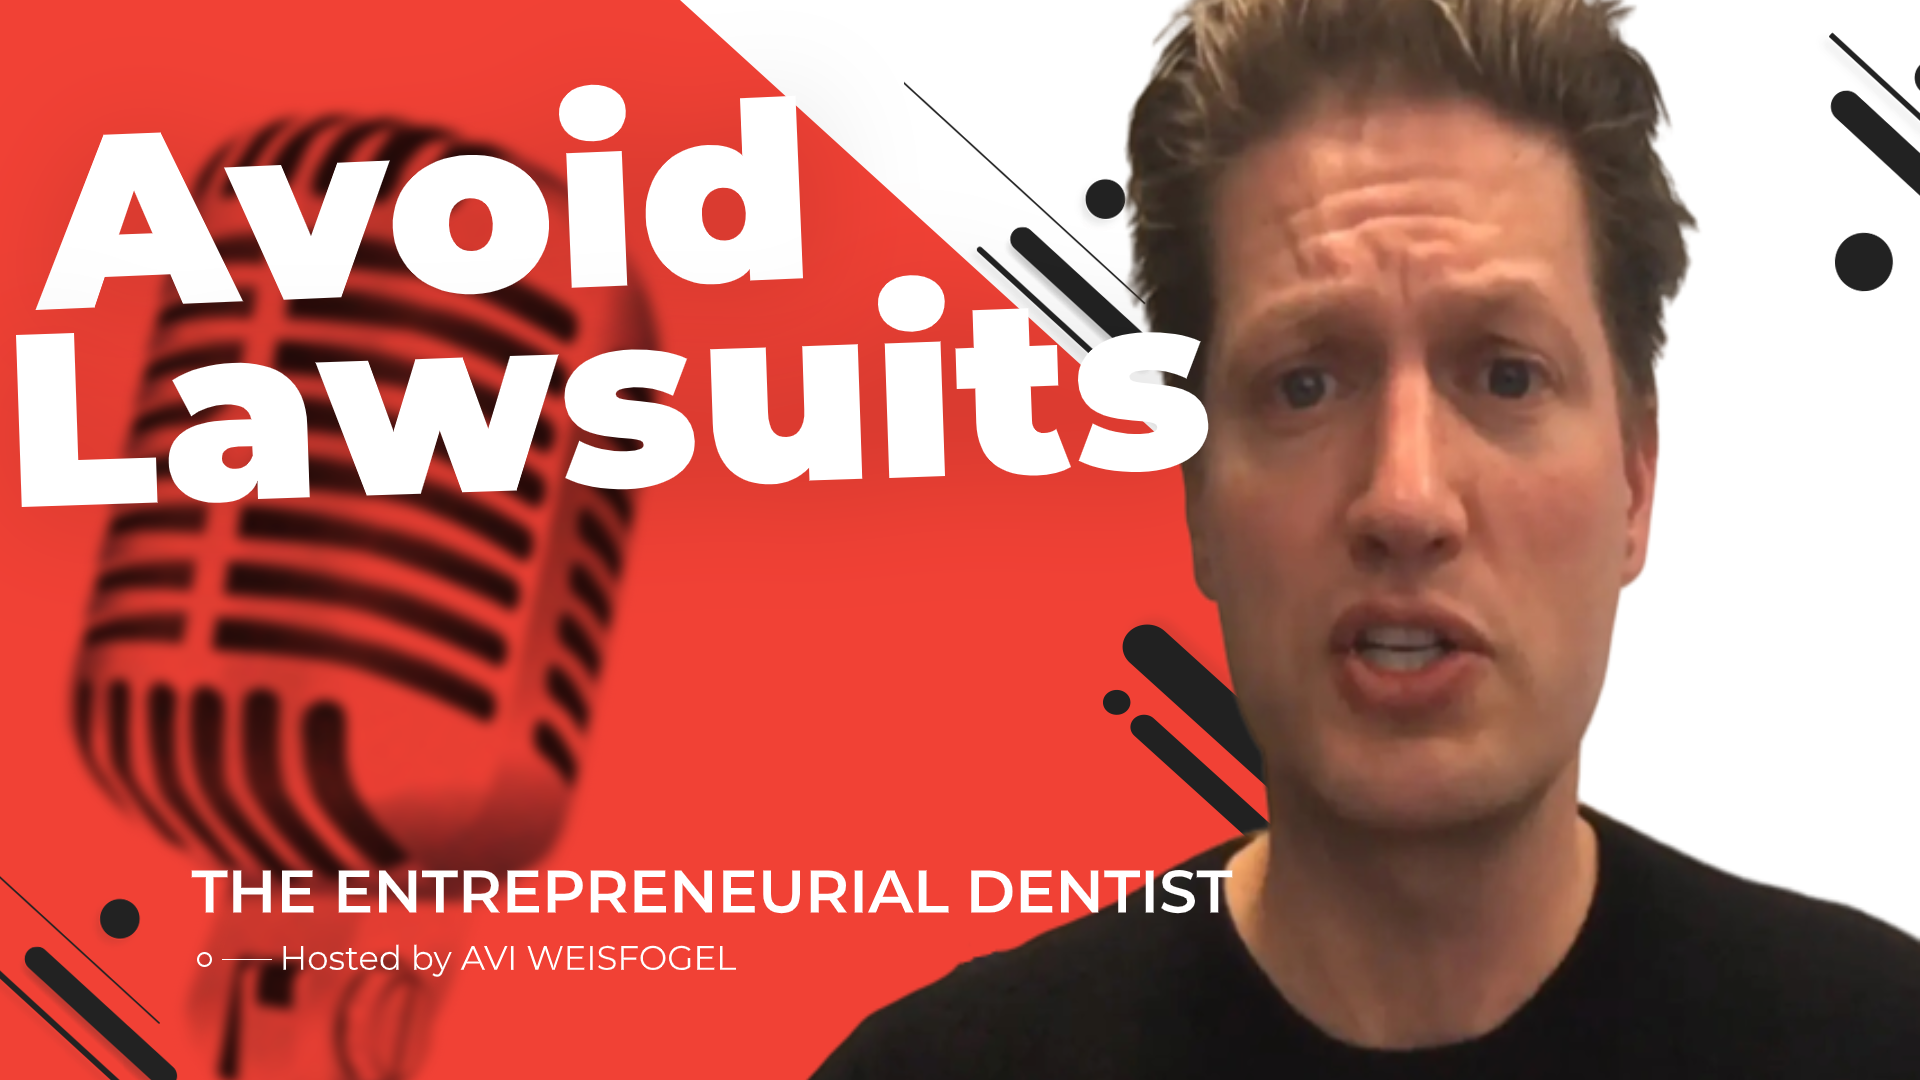 Avi Weisfogel Lawsuit | The Entrepreneurial Dentist Episode 4